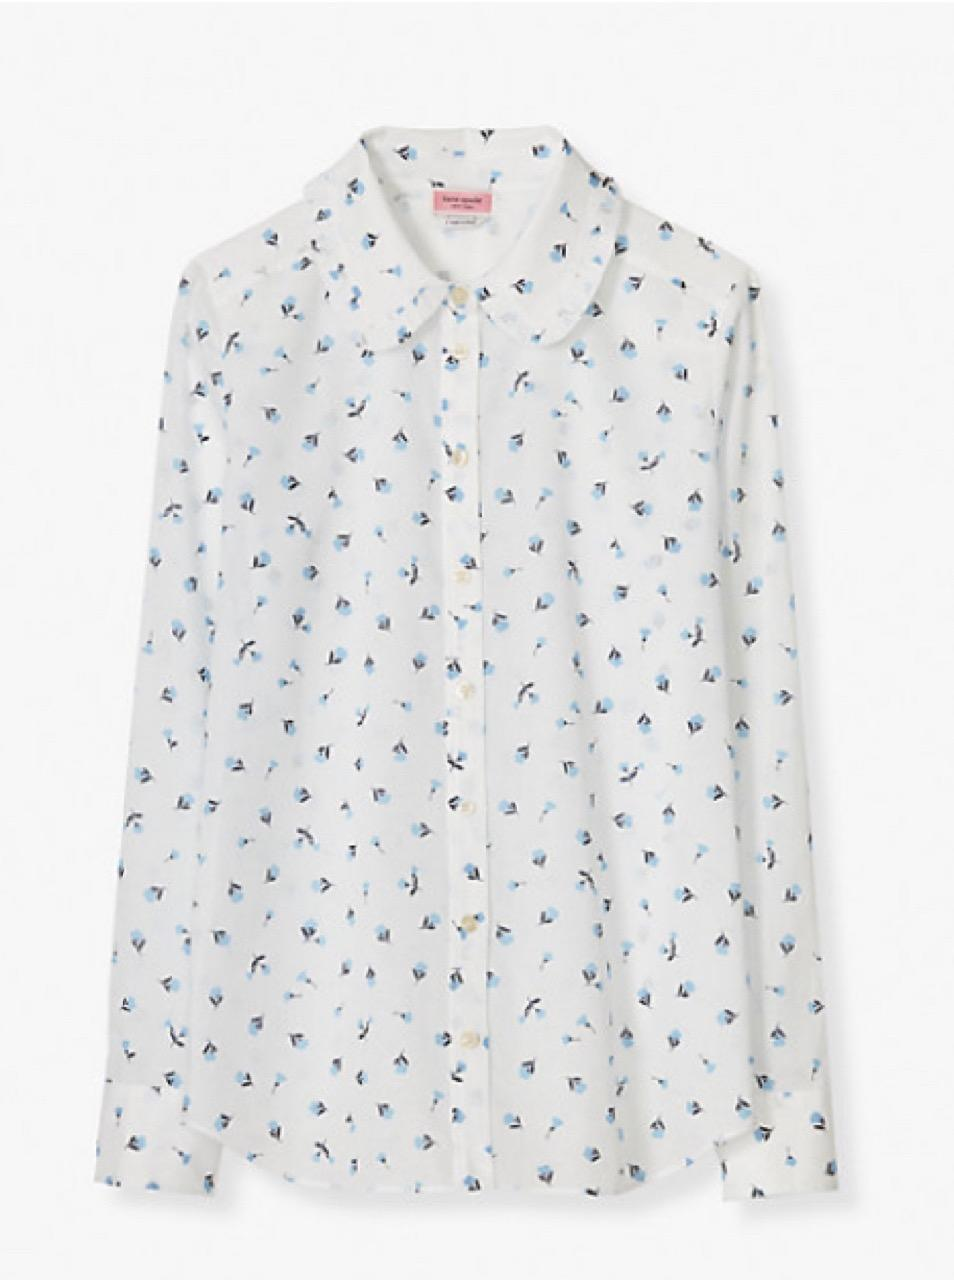 This beautiful blouse will leave you fashionably unruffled. (Photo: Kate Spade)